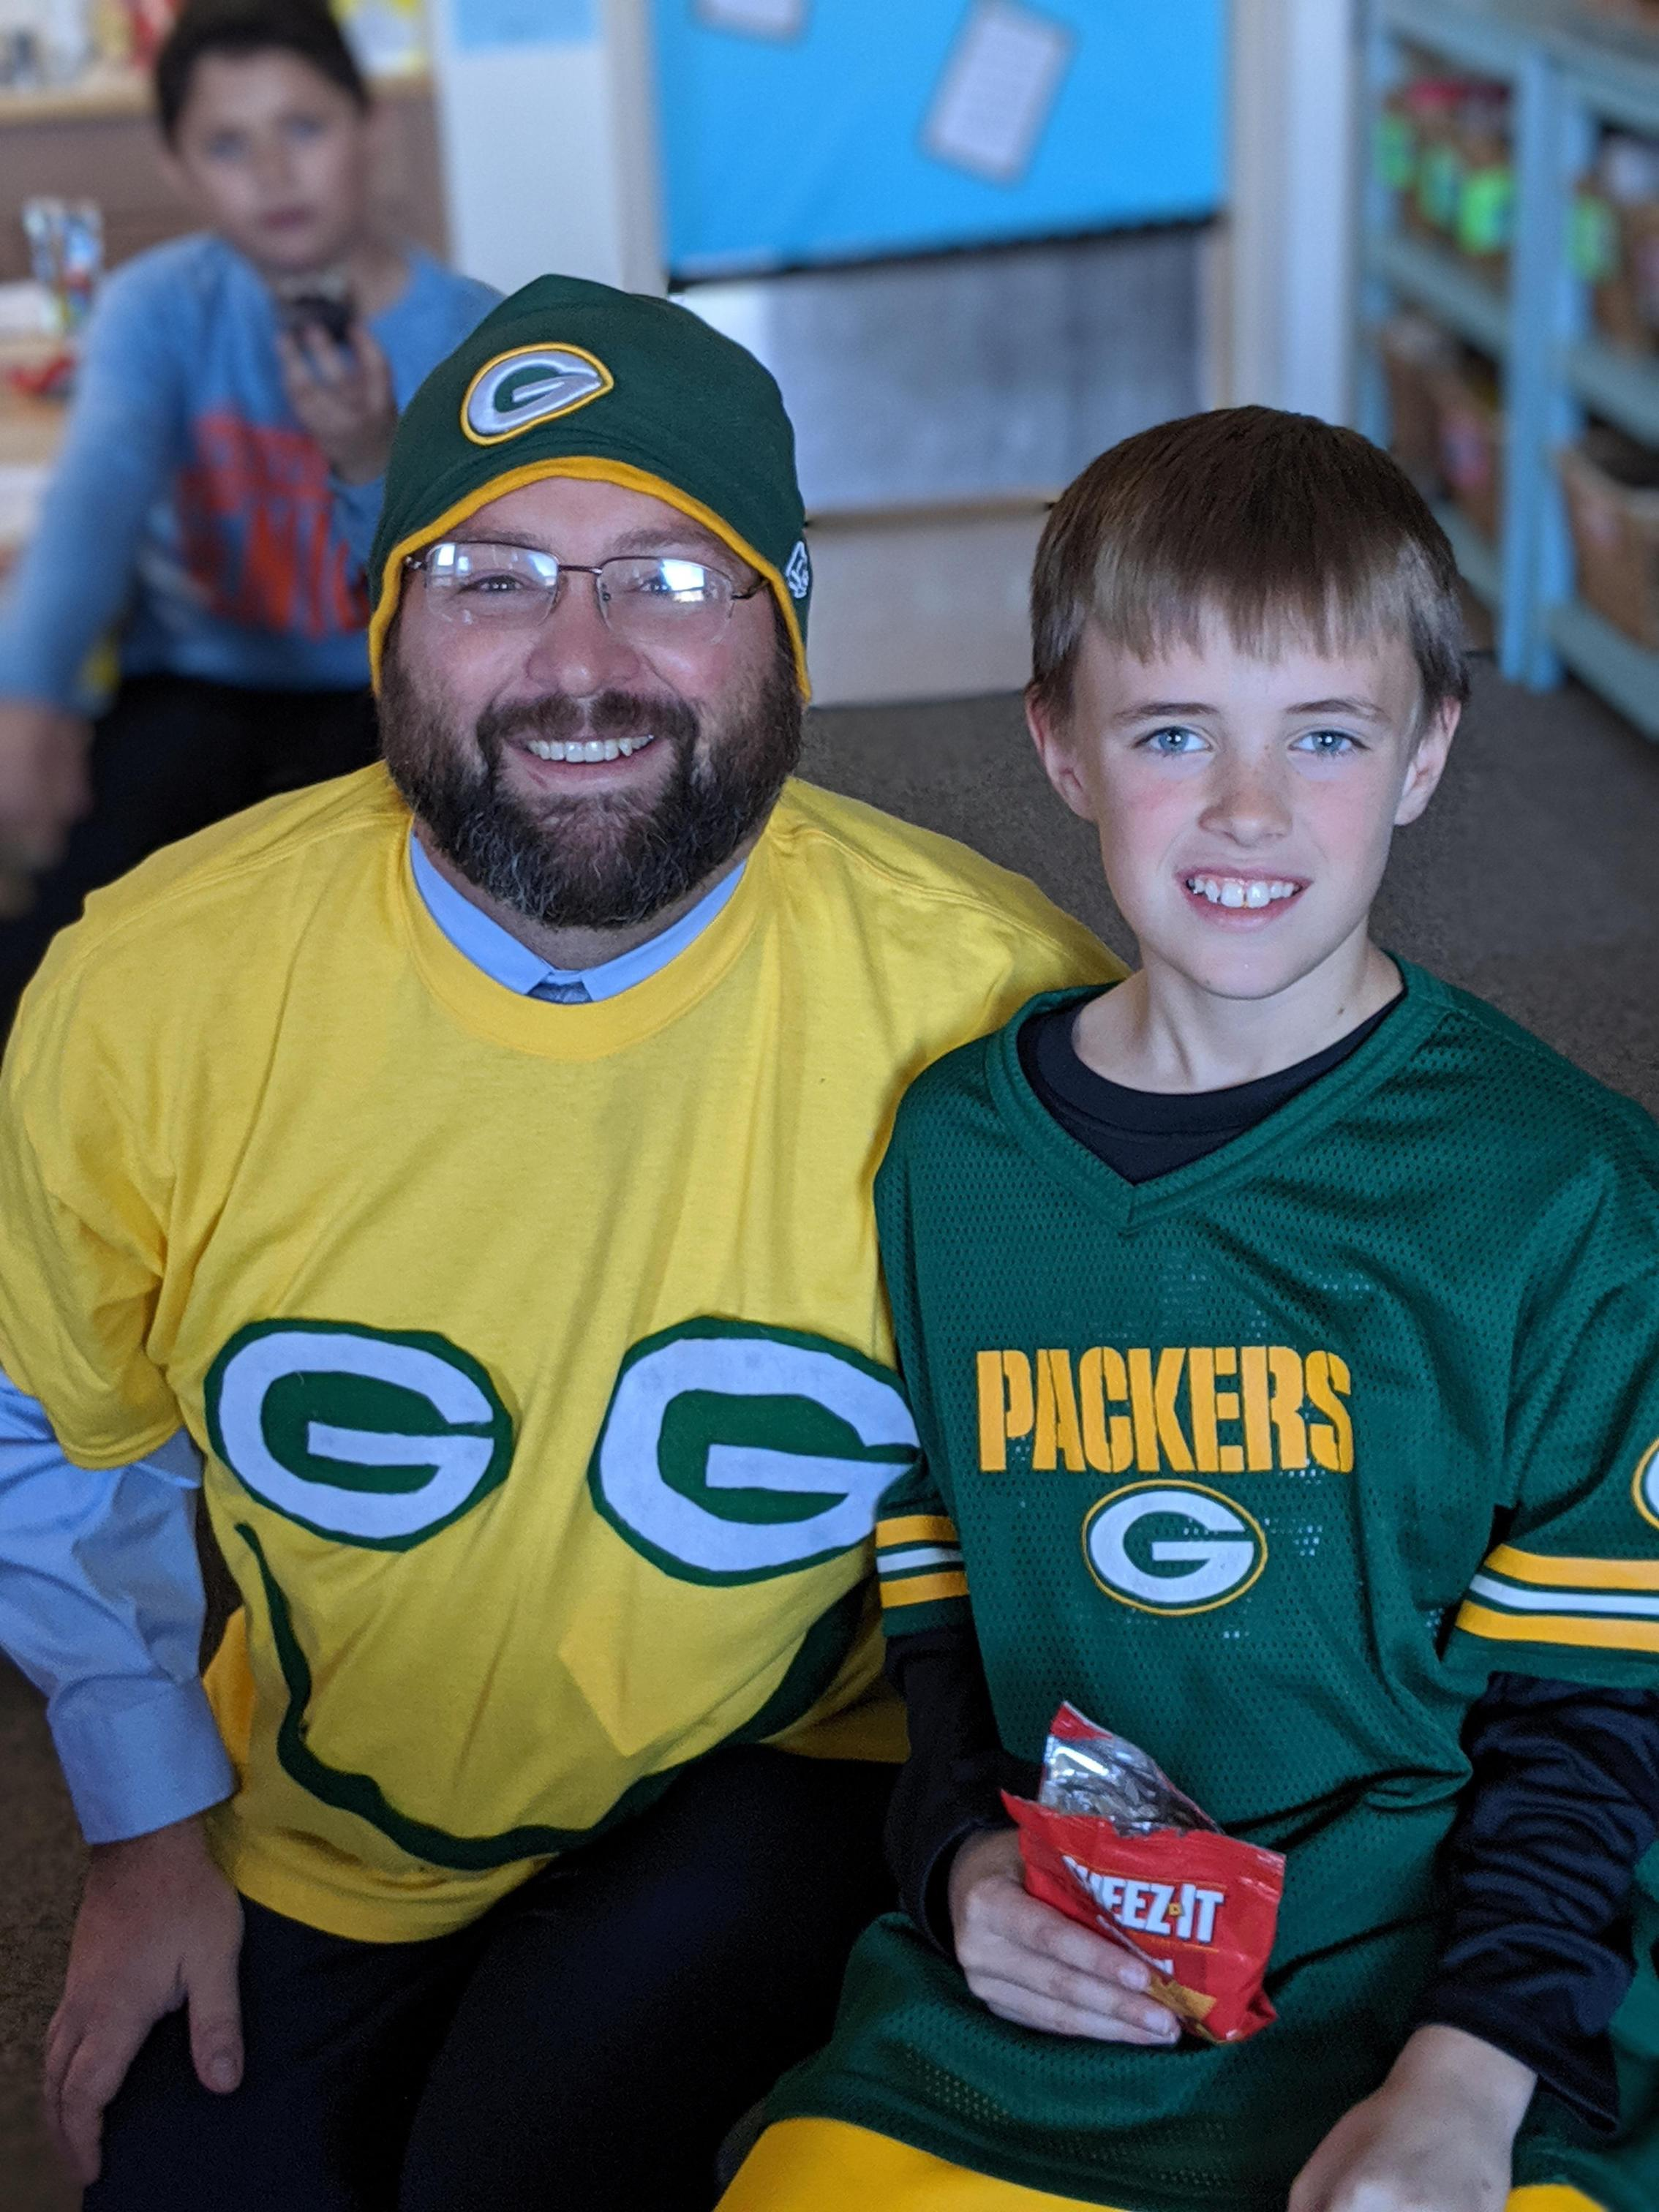 Mr. Bowe and Student Showing Packer Pride